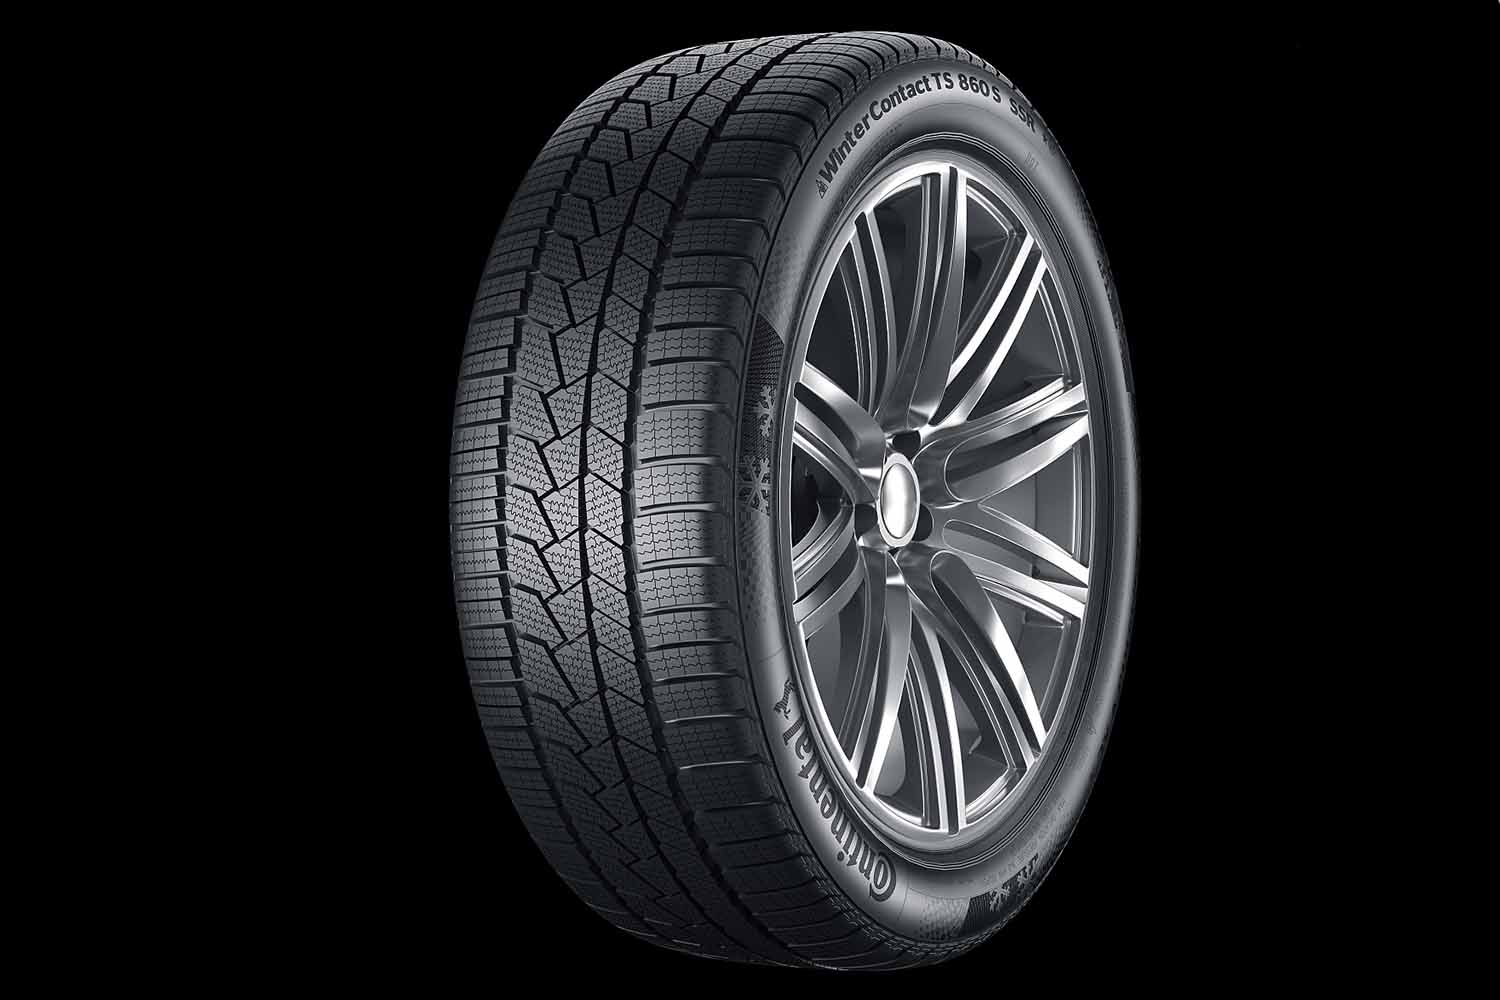 Gomme Nuove Continental 265/35 R20 99W WinterContact TS 860 S XL M+S pneumatici nuovi Invernale